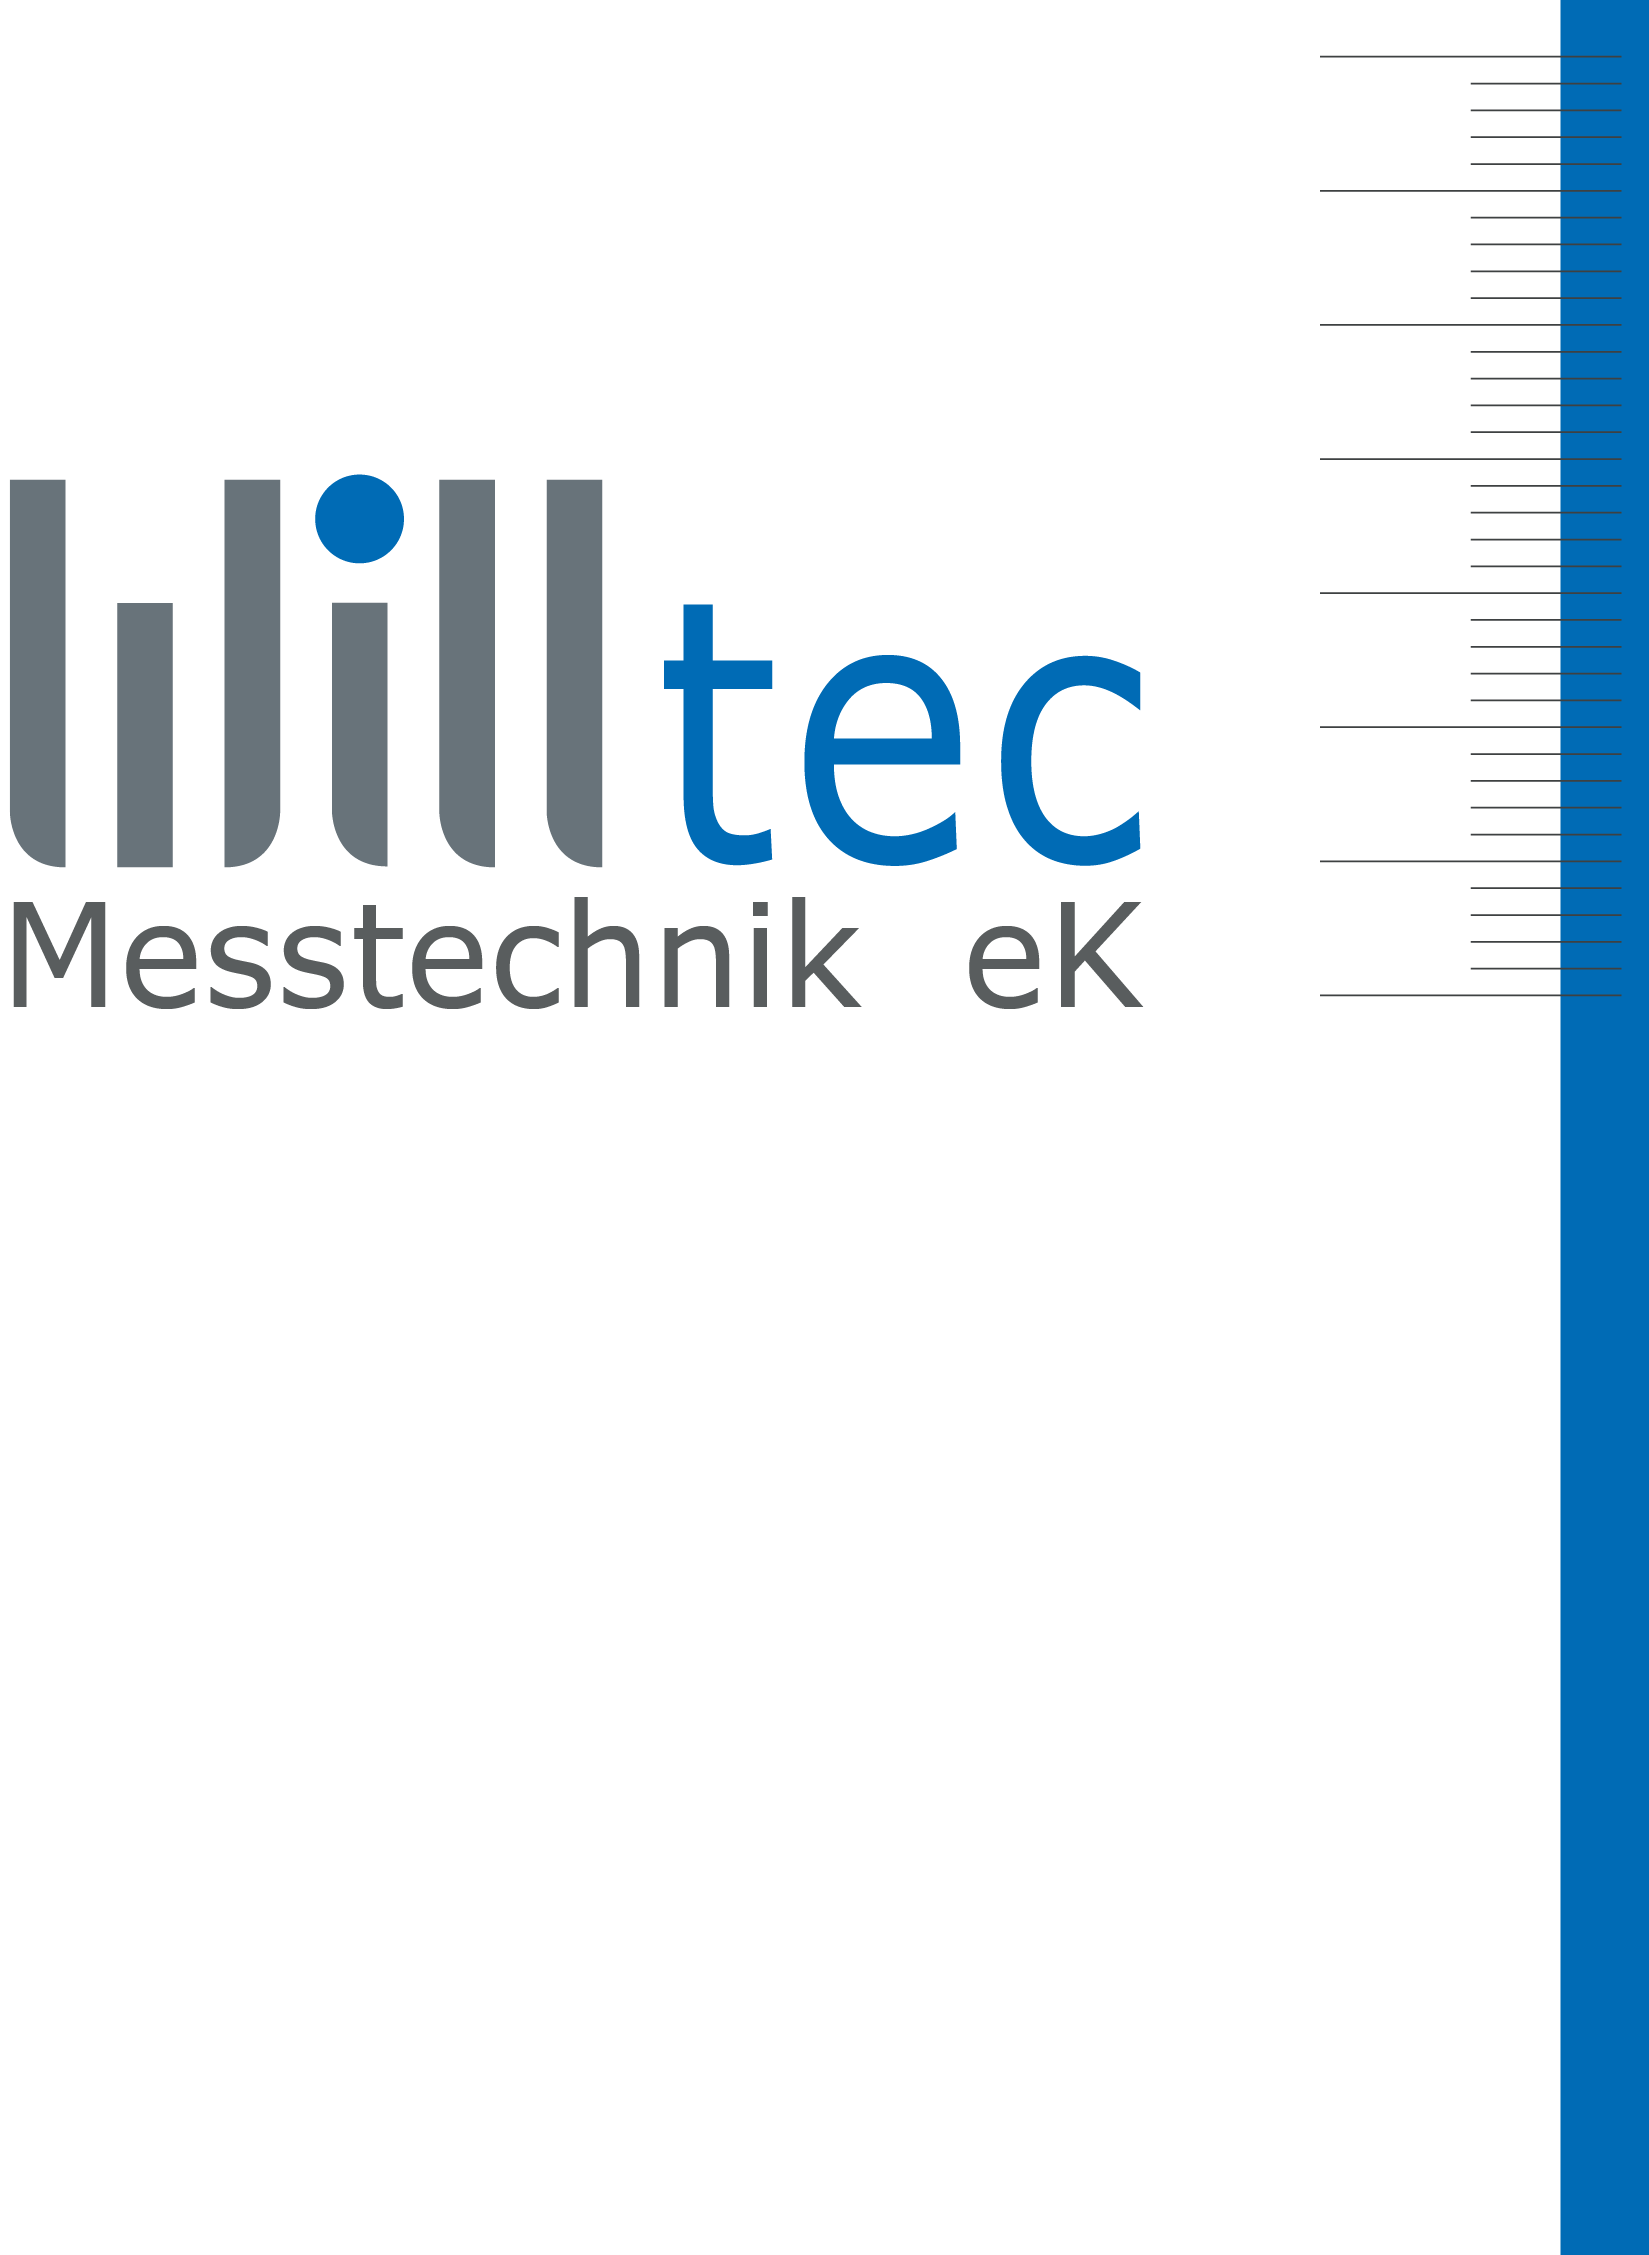 Willtec_Logo